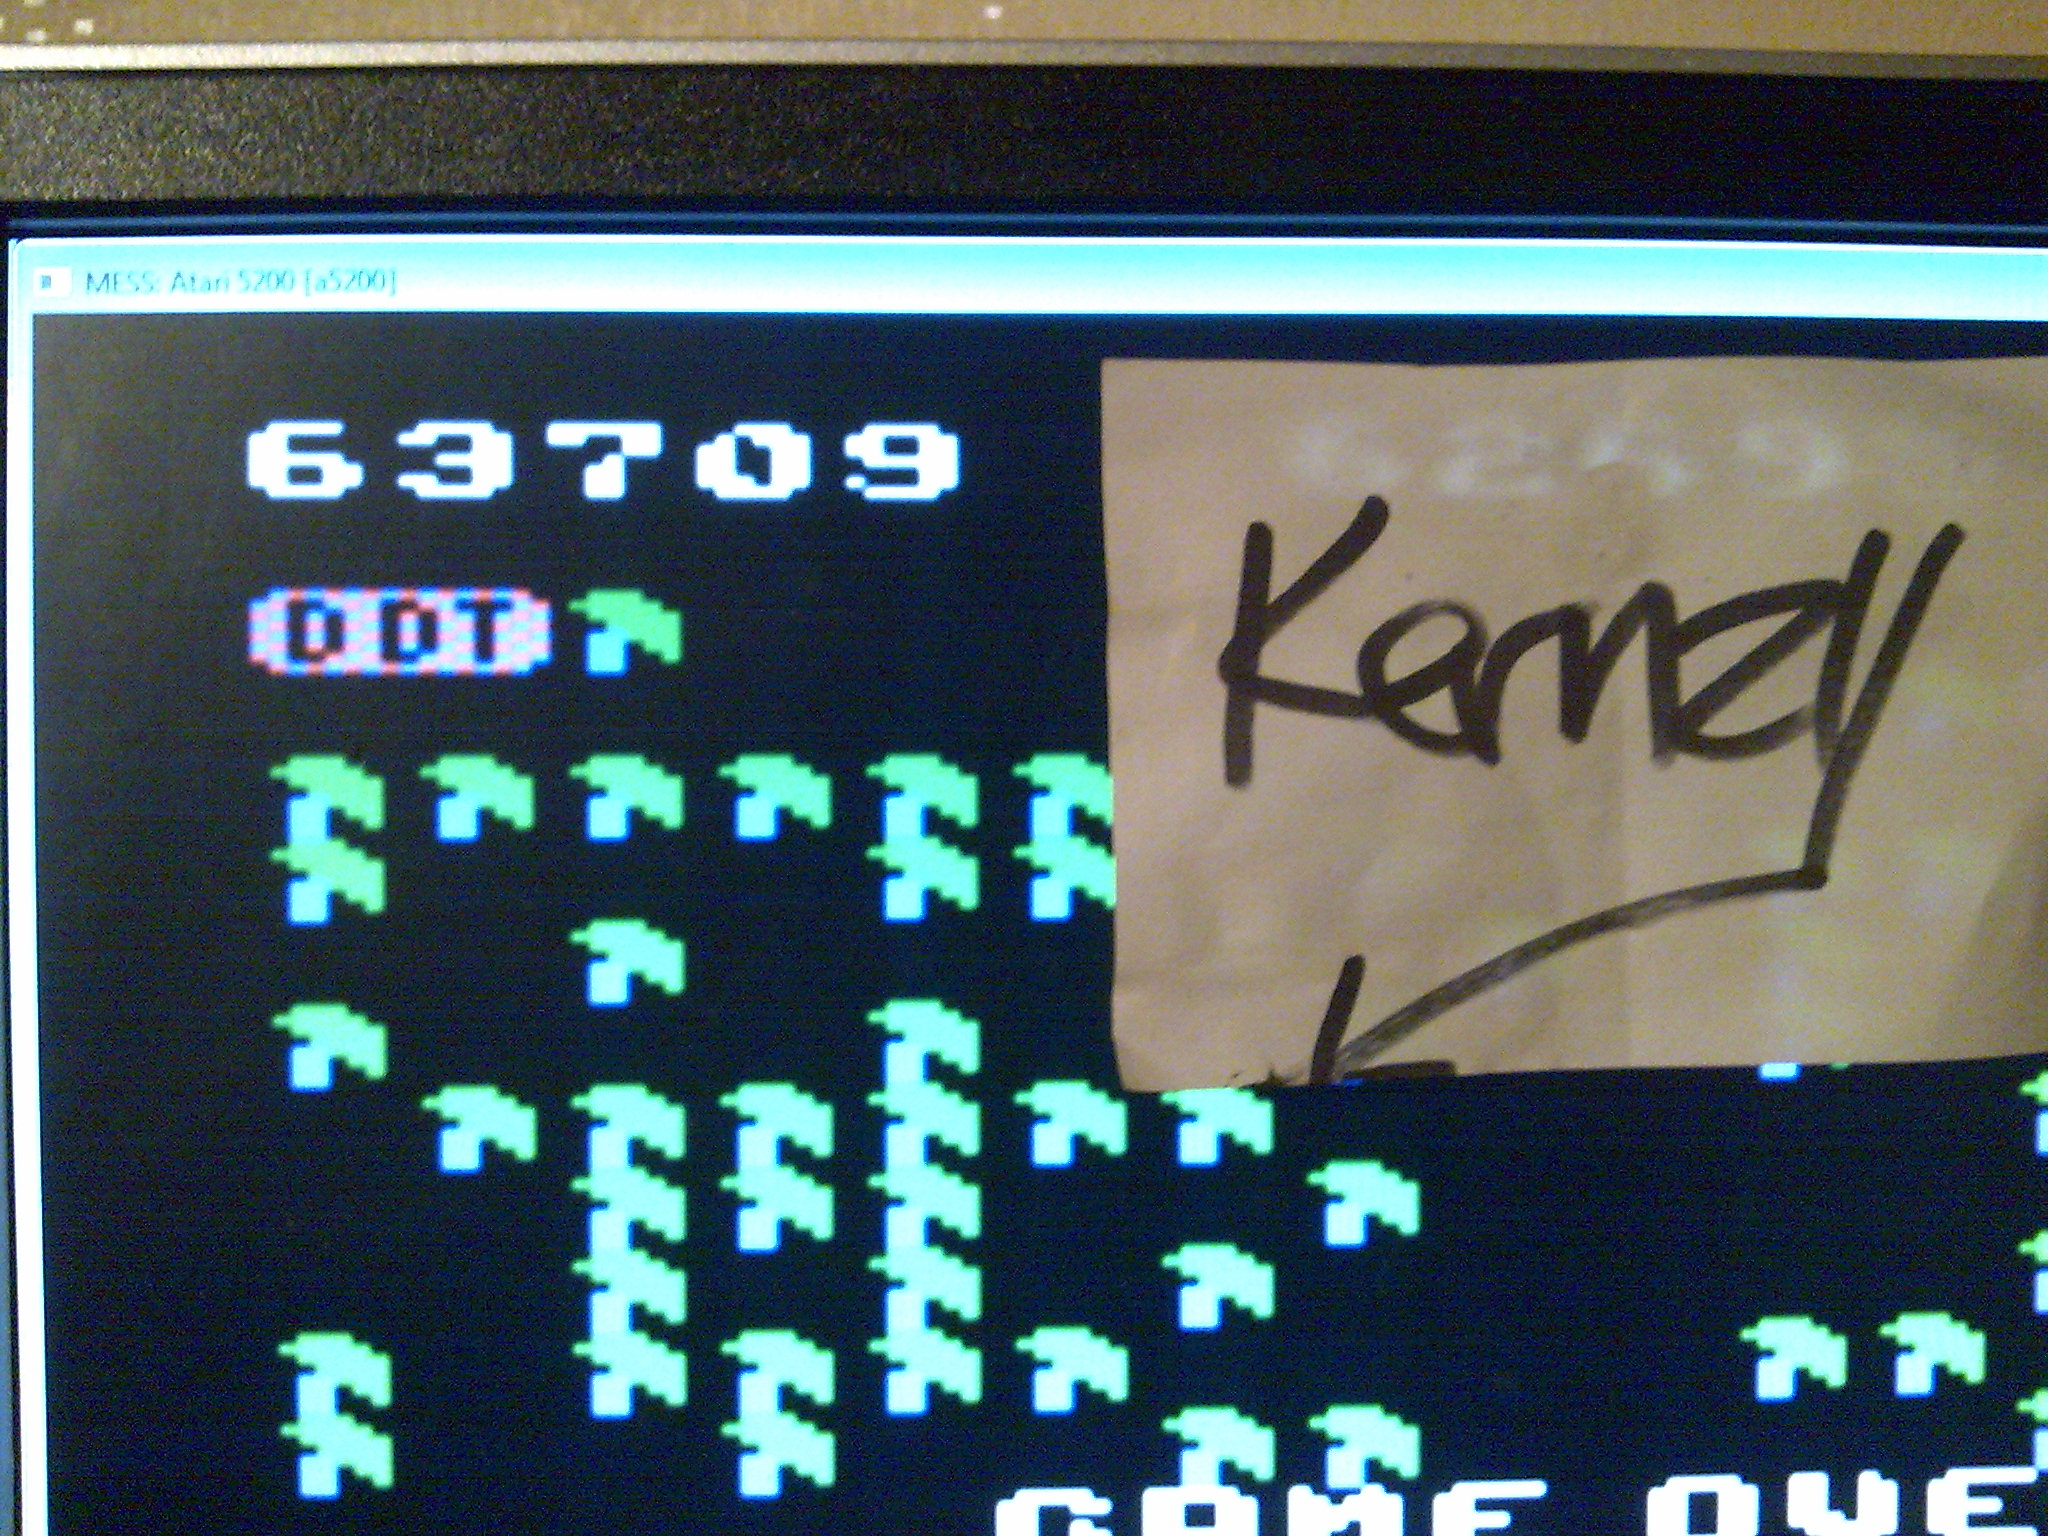 kernzy: Millipede (Atari 5200 Emulated) 63,709 points on 2014-10-11 03:24:50